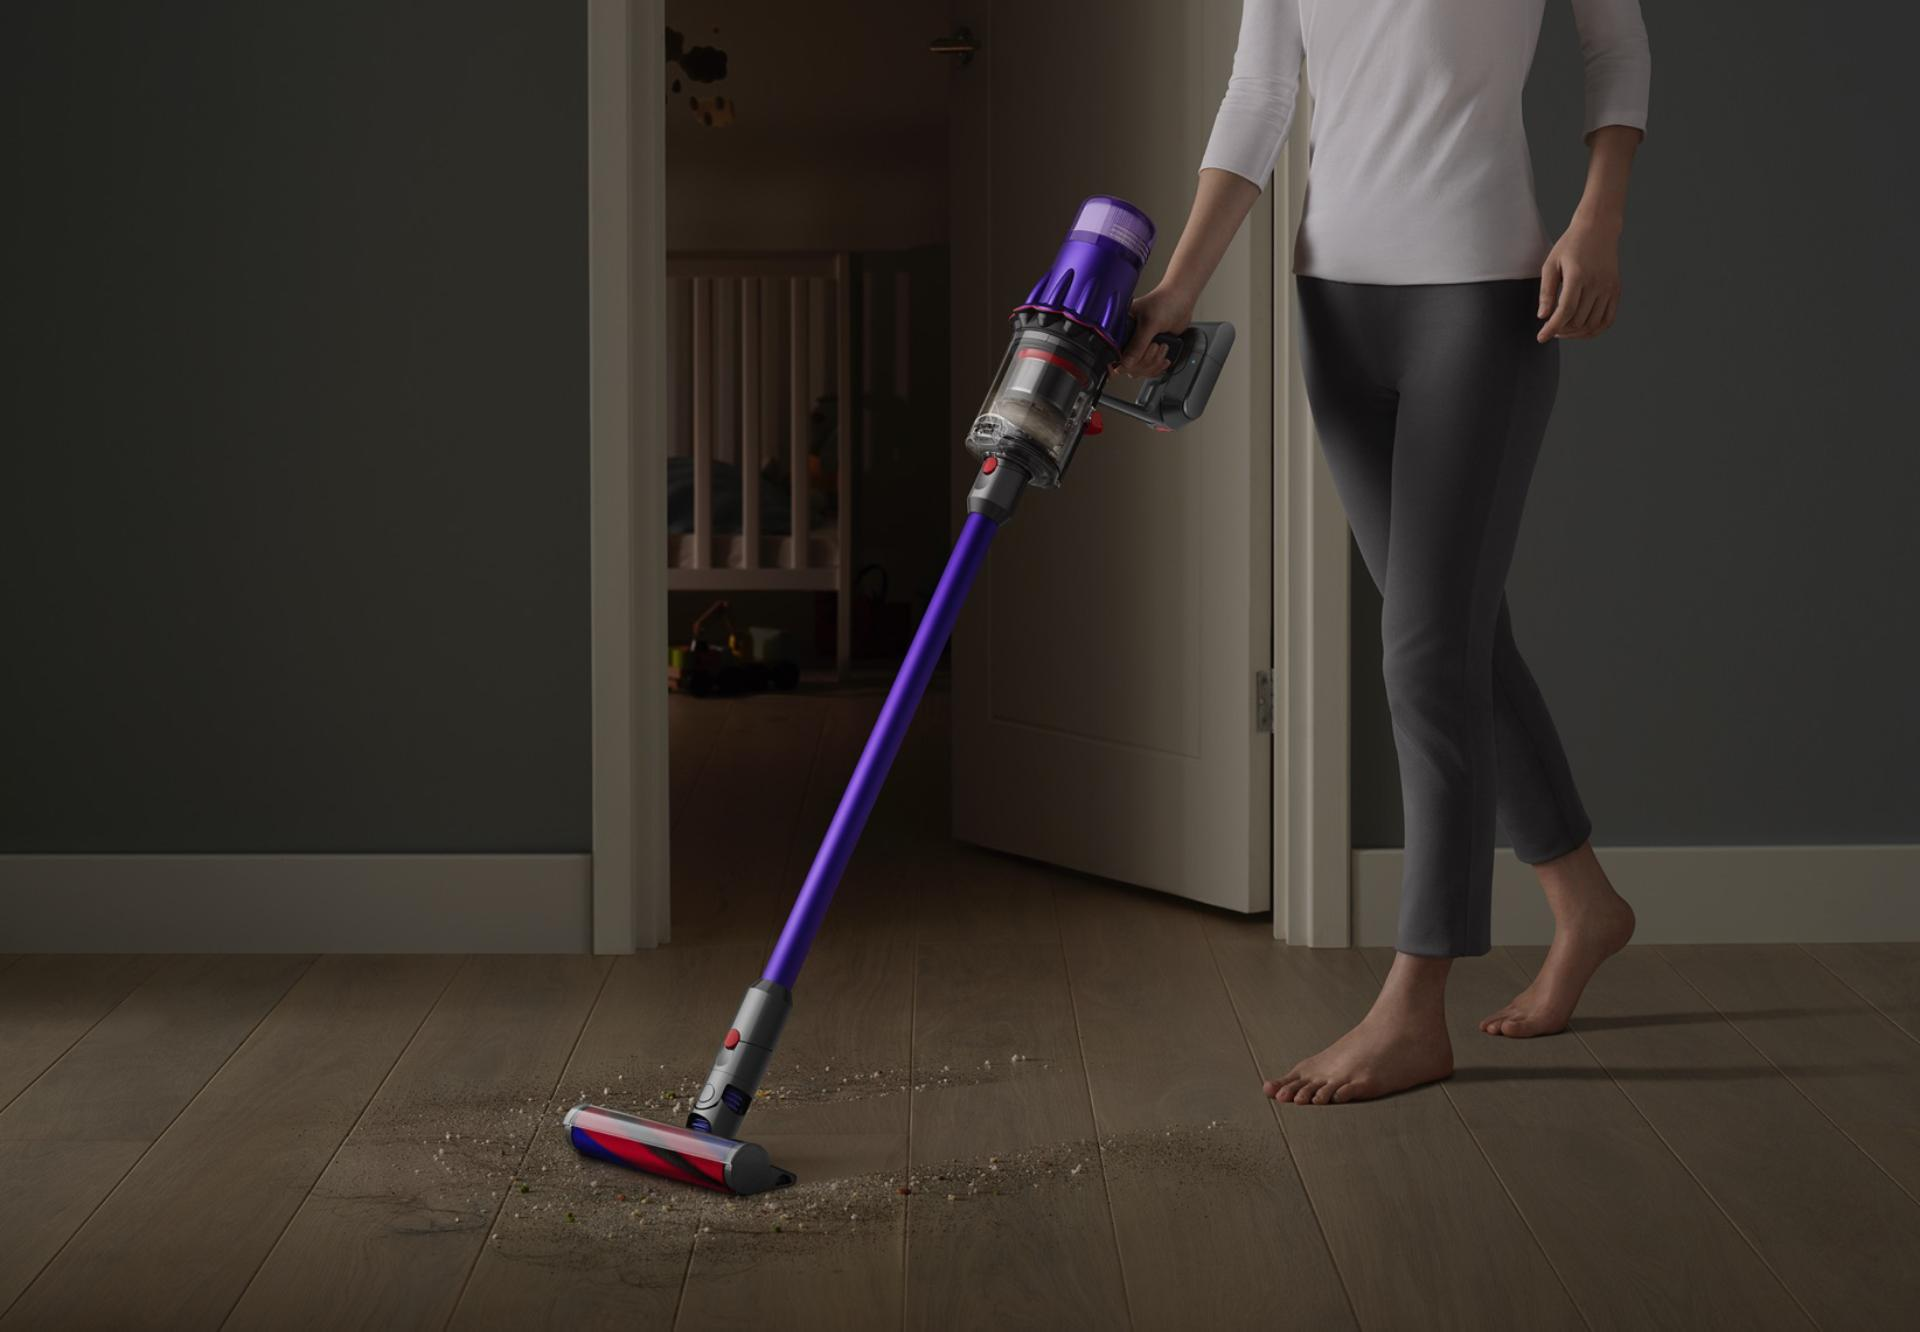 Dyson Digital Slim™ vacuum cleaning a hard floor by a bedroom door.